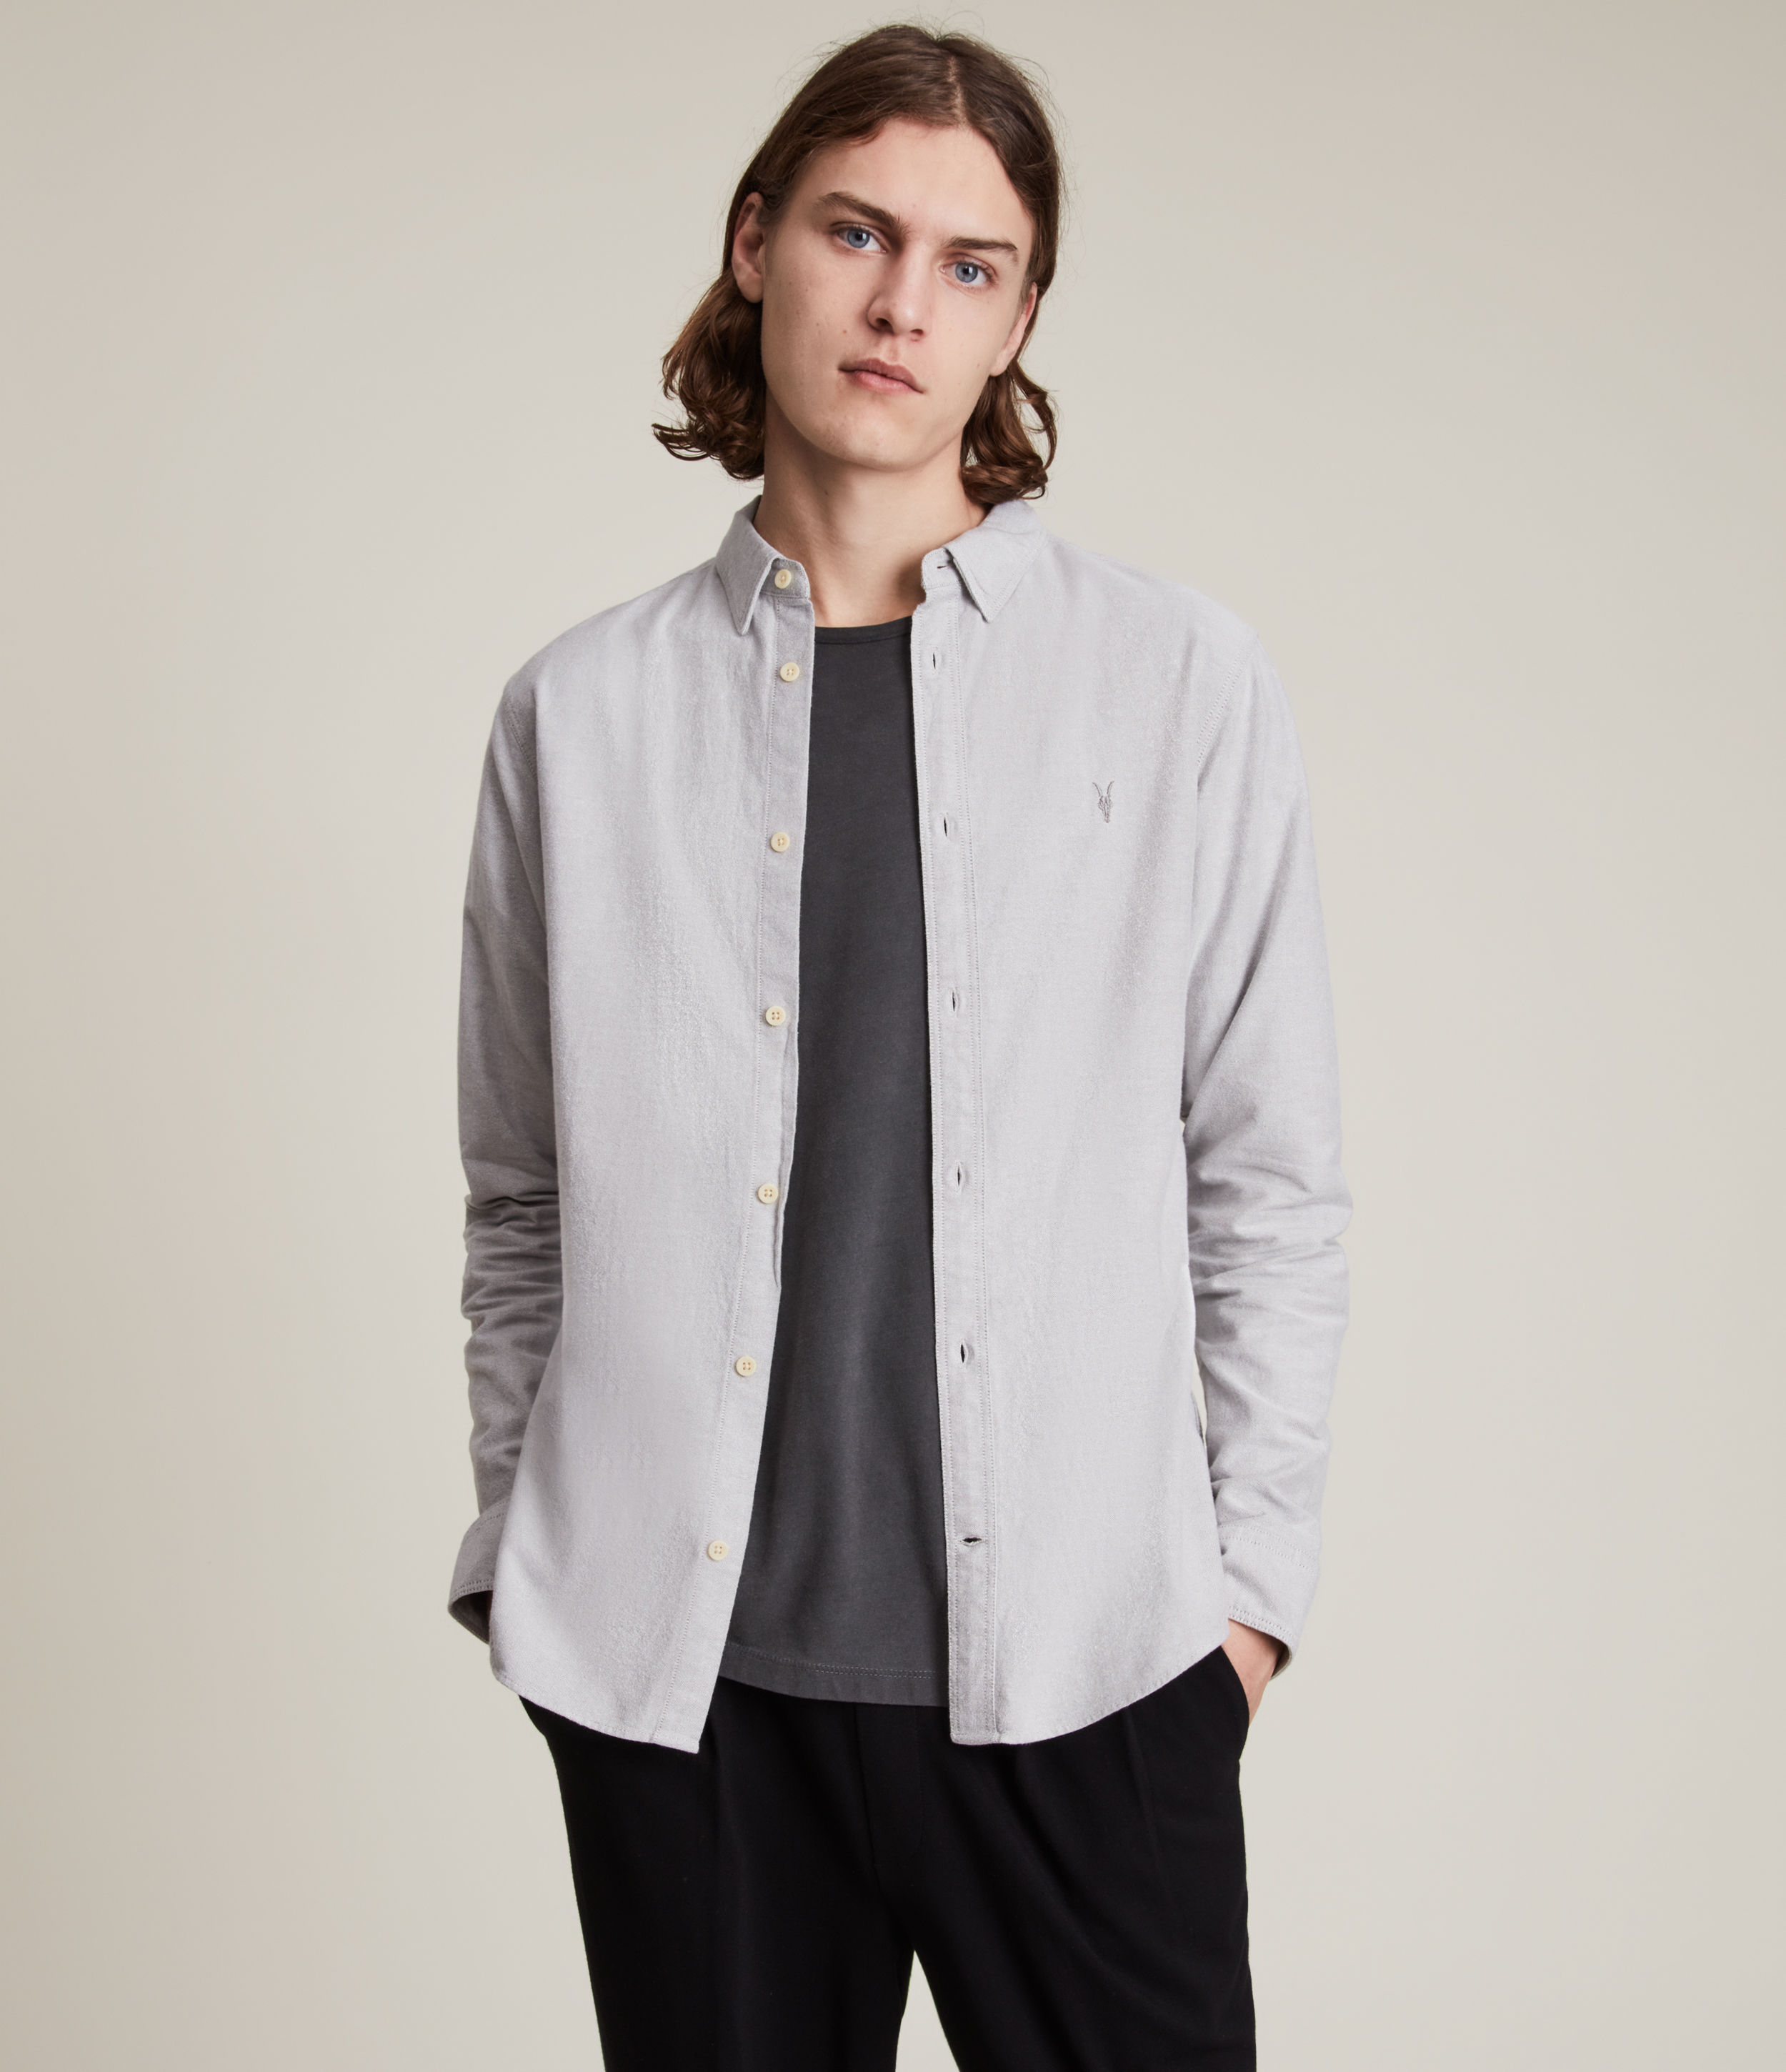 AllSaints Men's Cotton Slim Fit Huntingdon Long Sleeve Shirt, Grey, Size: L